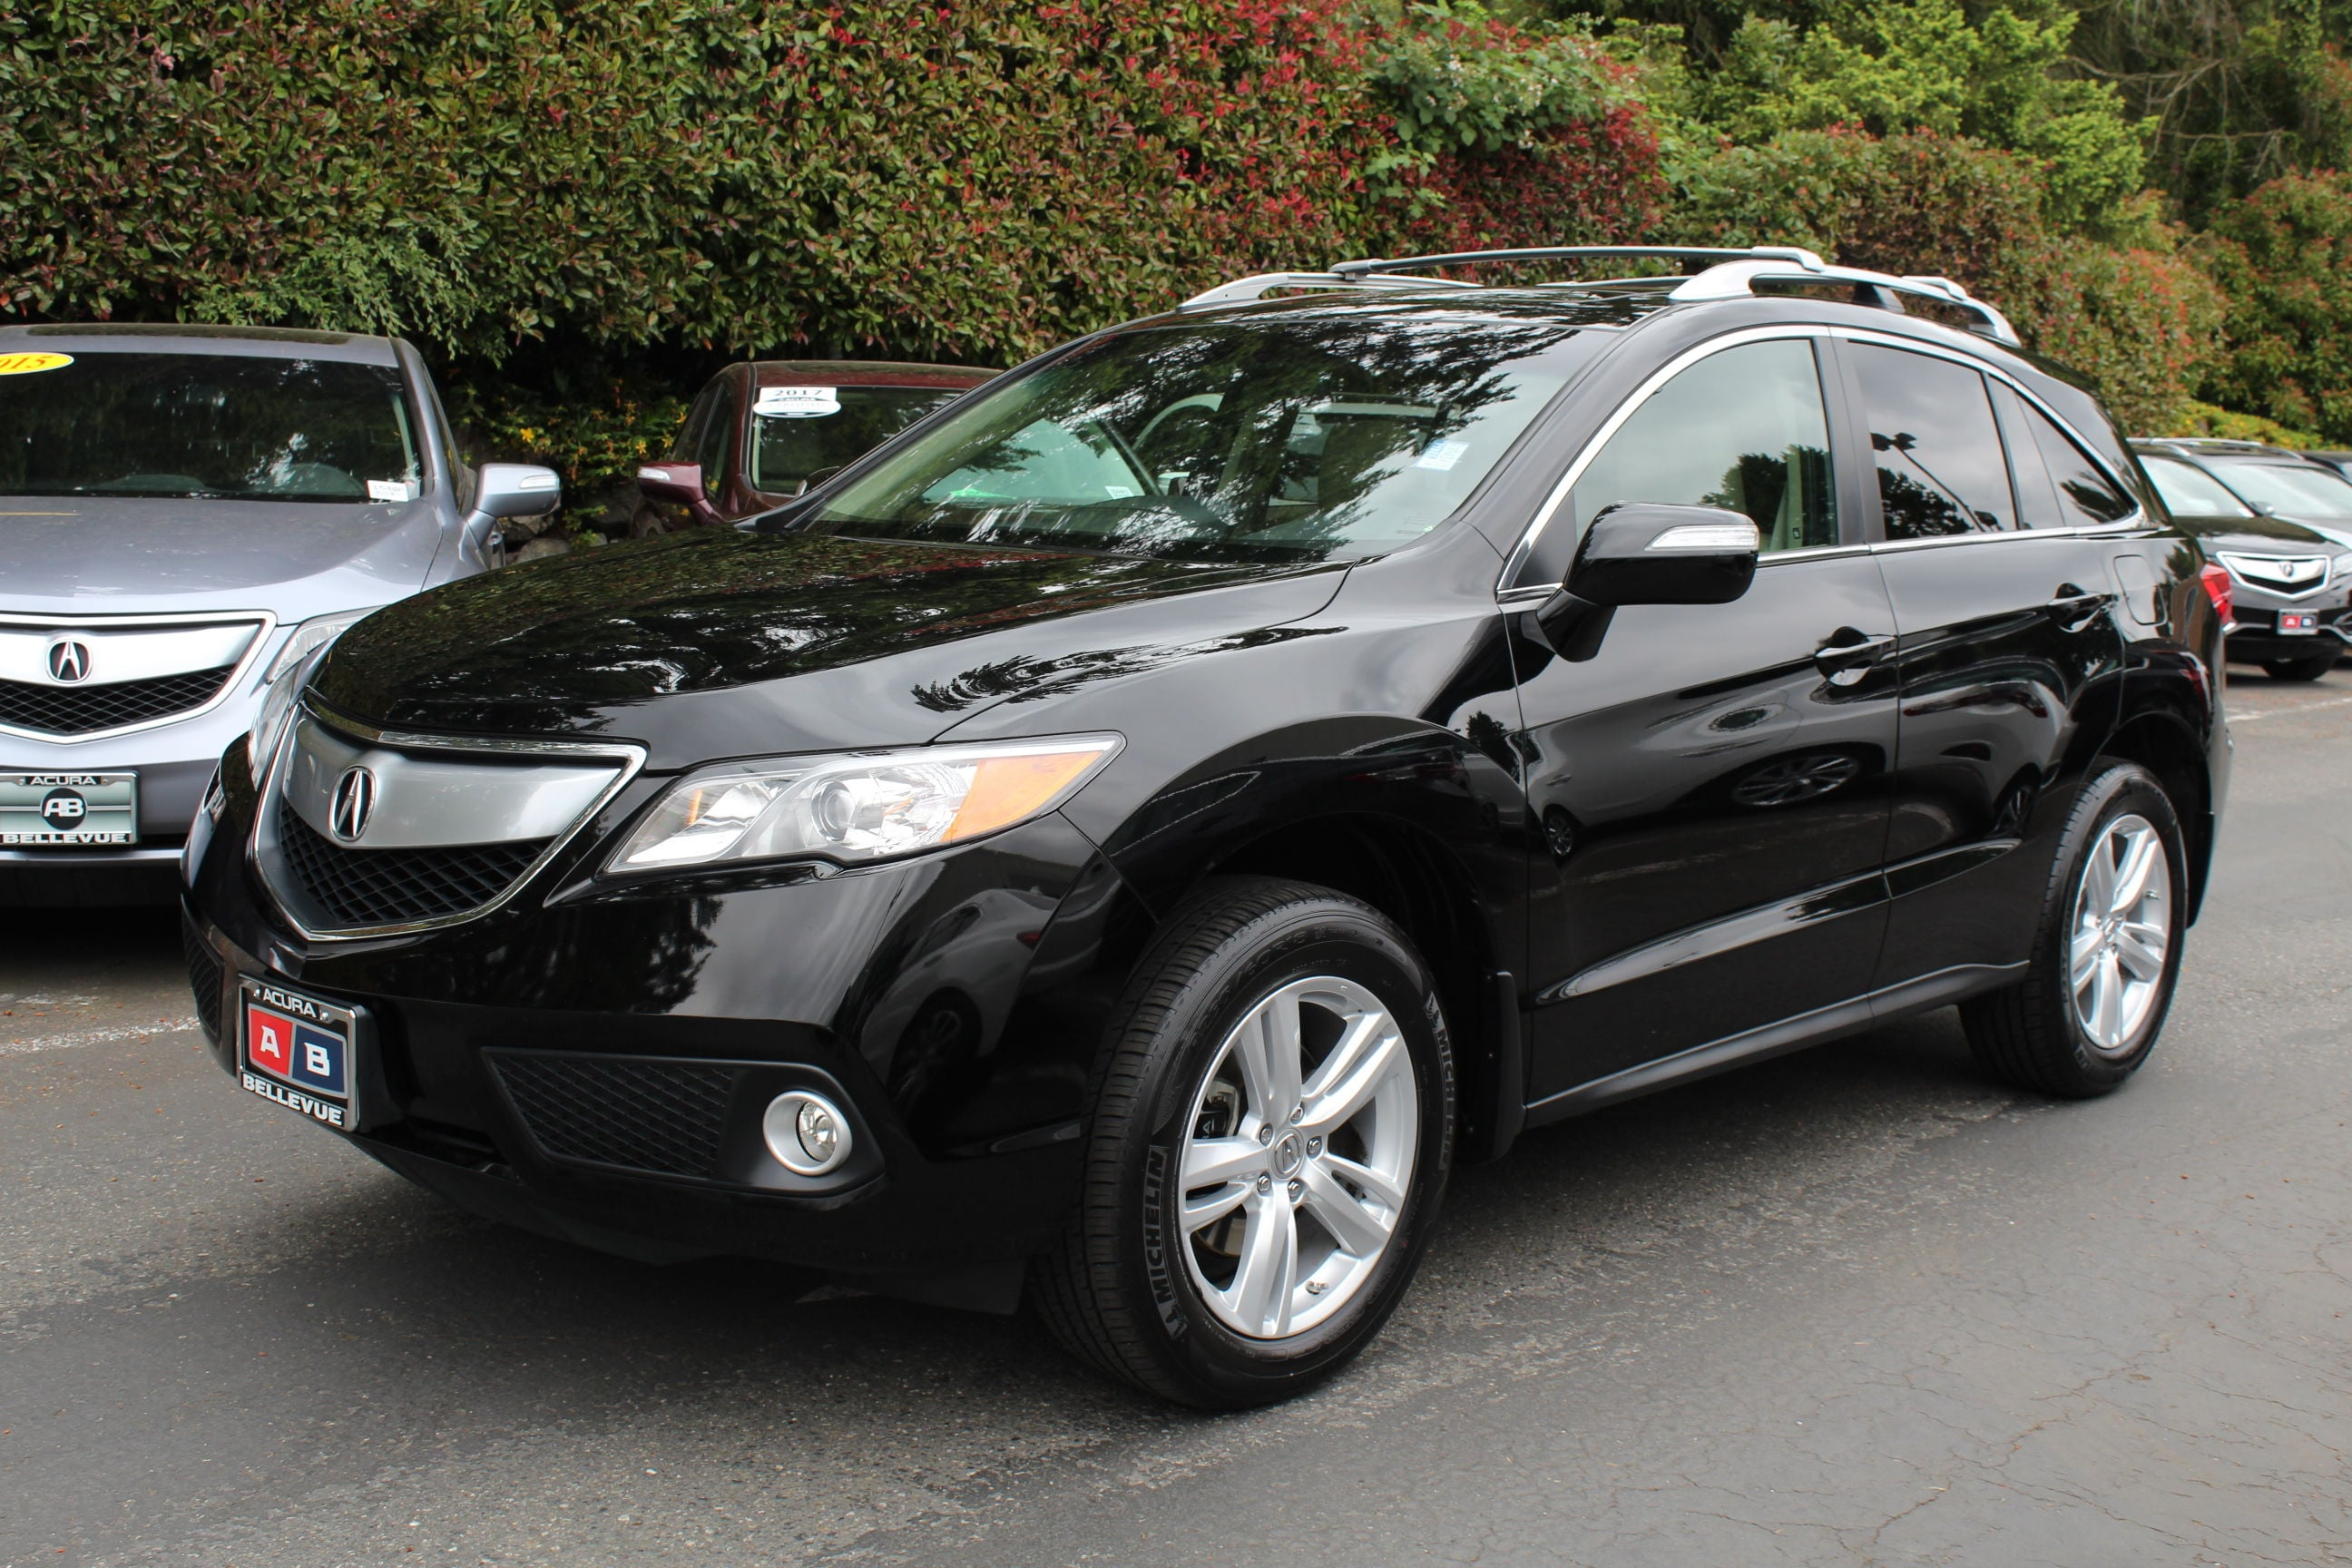 acura there rdx limits auto are for models news no team